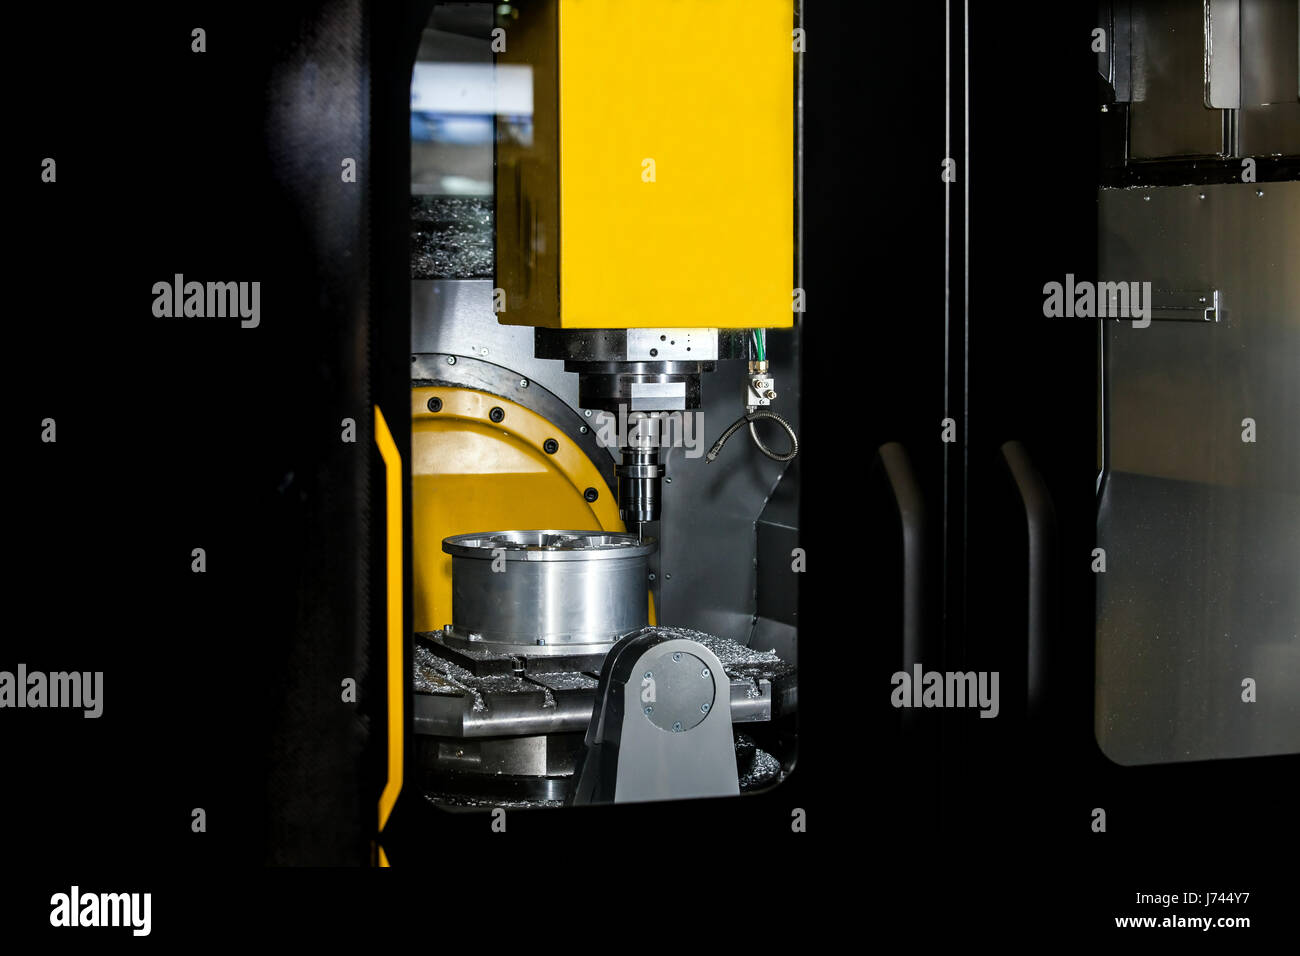 Milling machining center - Stock Image